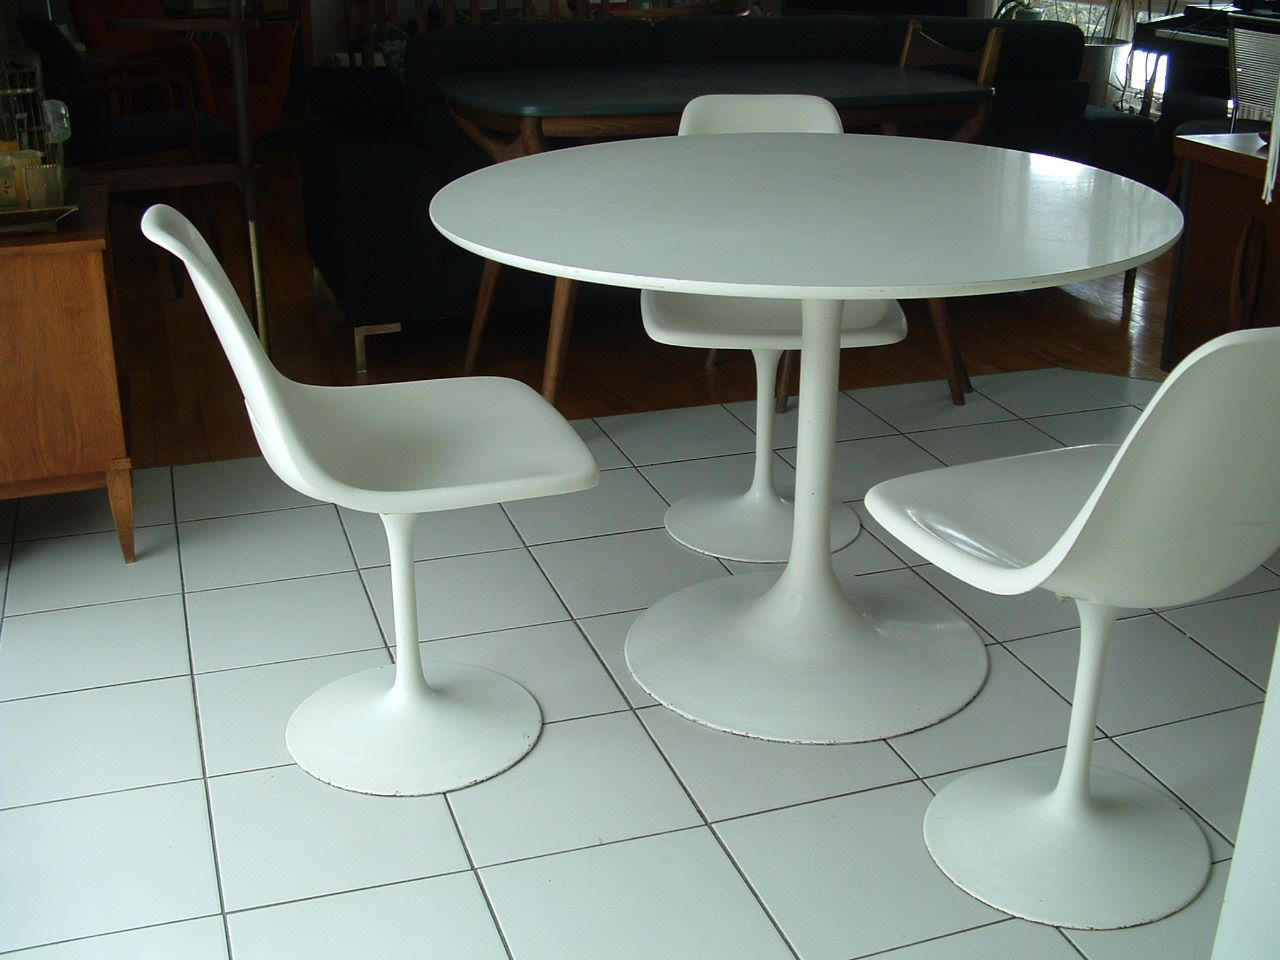 DONE Scored This Original Yo Knoll Eero Saarinen Tulip - Original tulip table